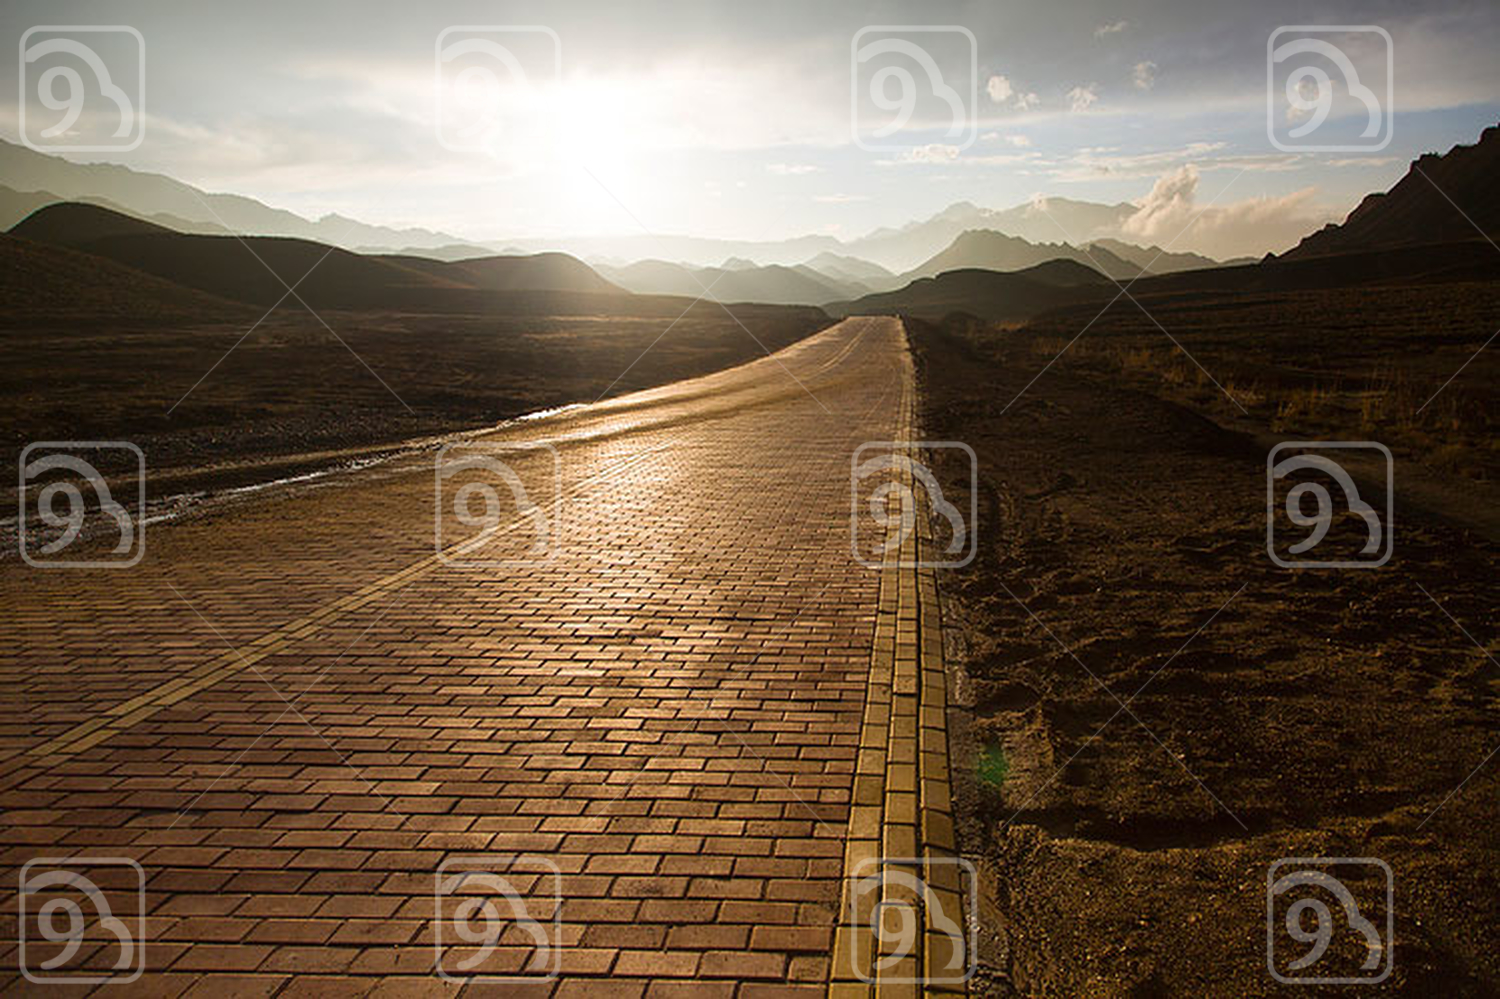 Road and mountain range in Gansu province, China